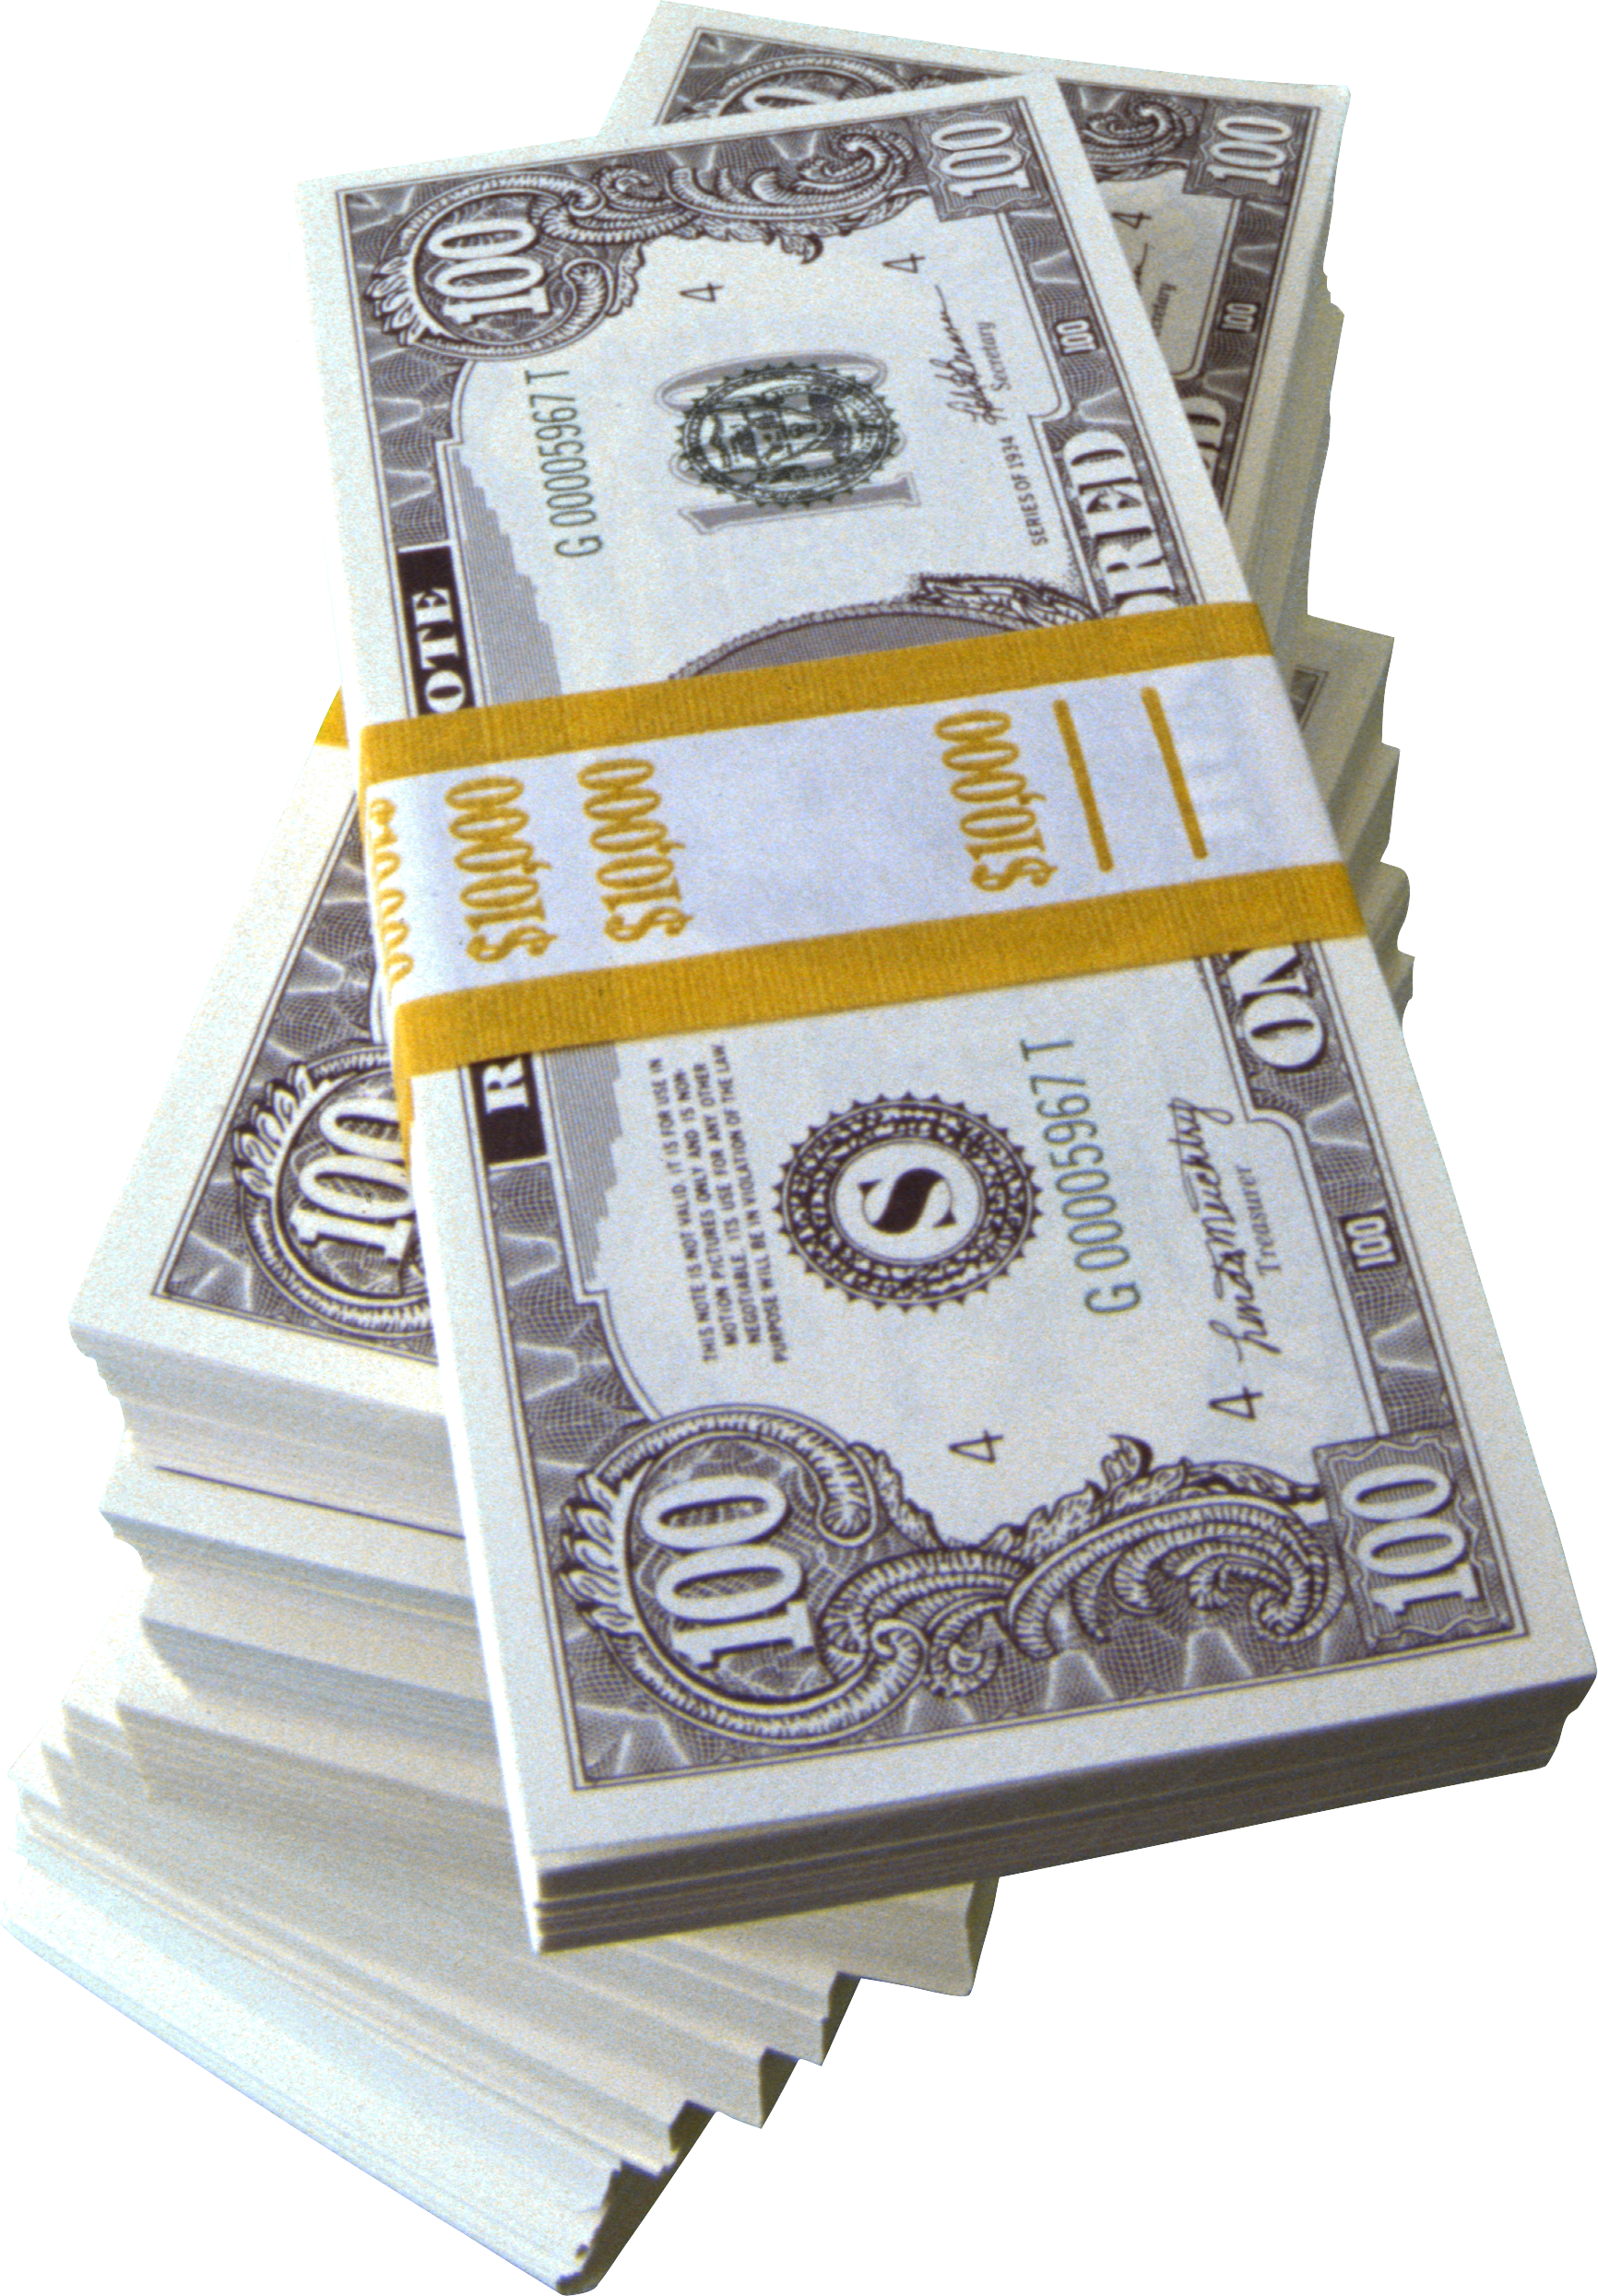 Exchanigng money for gold clipart vector royalty free library Money's PNG Image - PurePNG | Free transparent CC0 PNG Image Library vector royalty free library